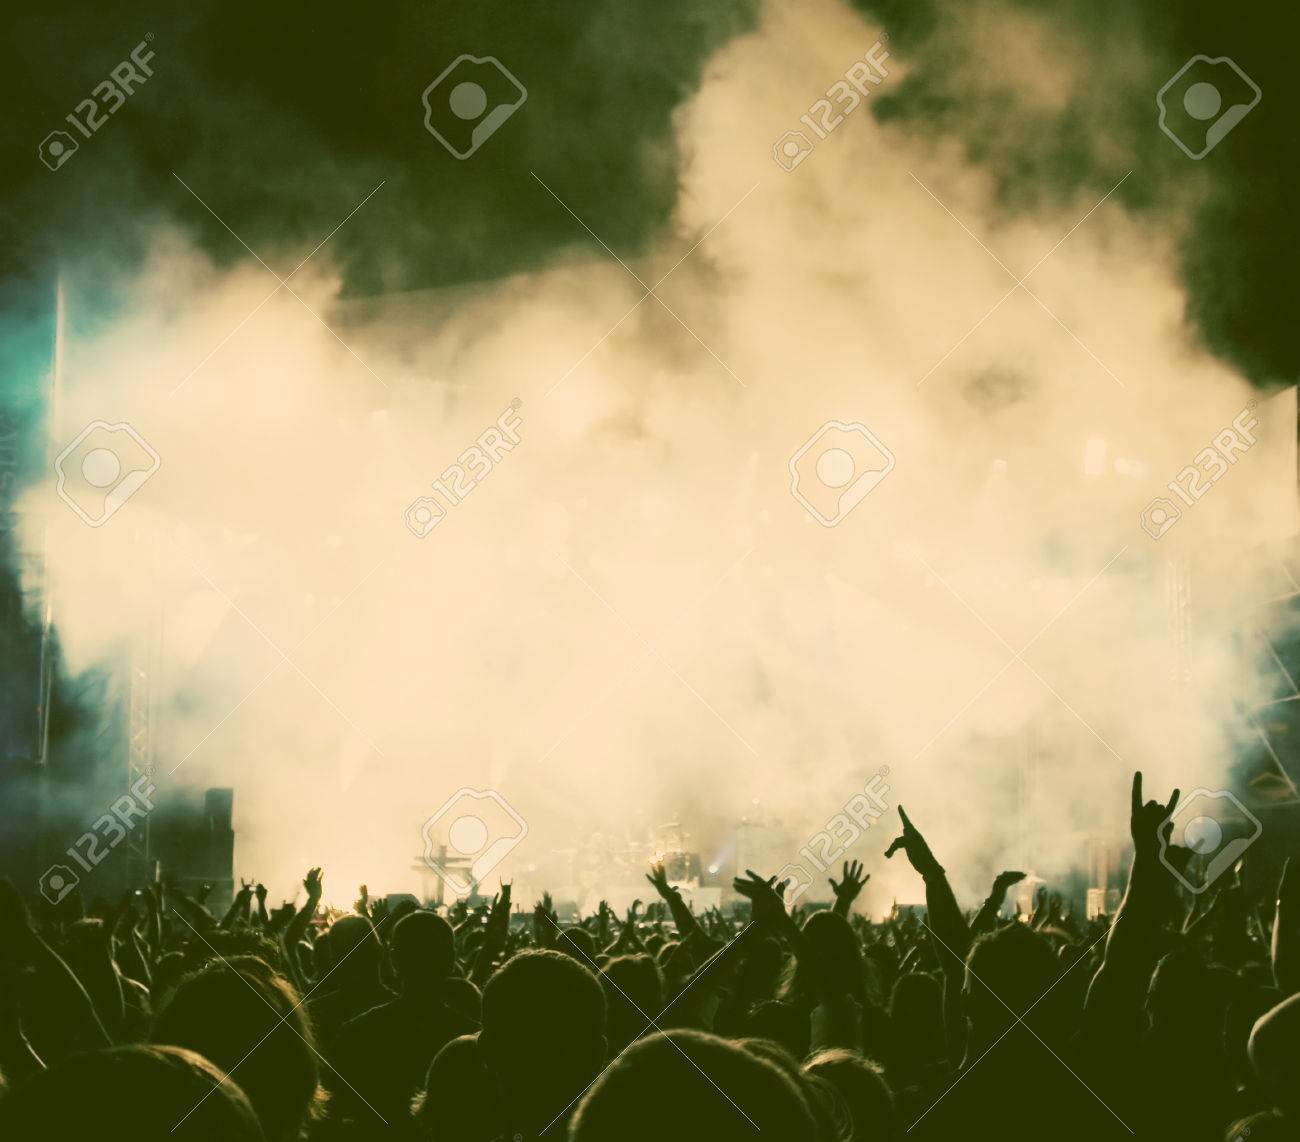 Crowd at concert - retro style photo - 41116212